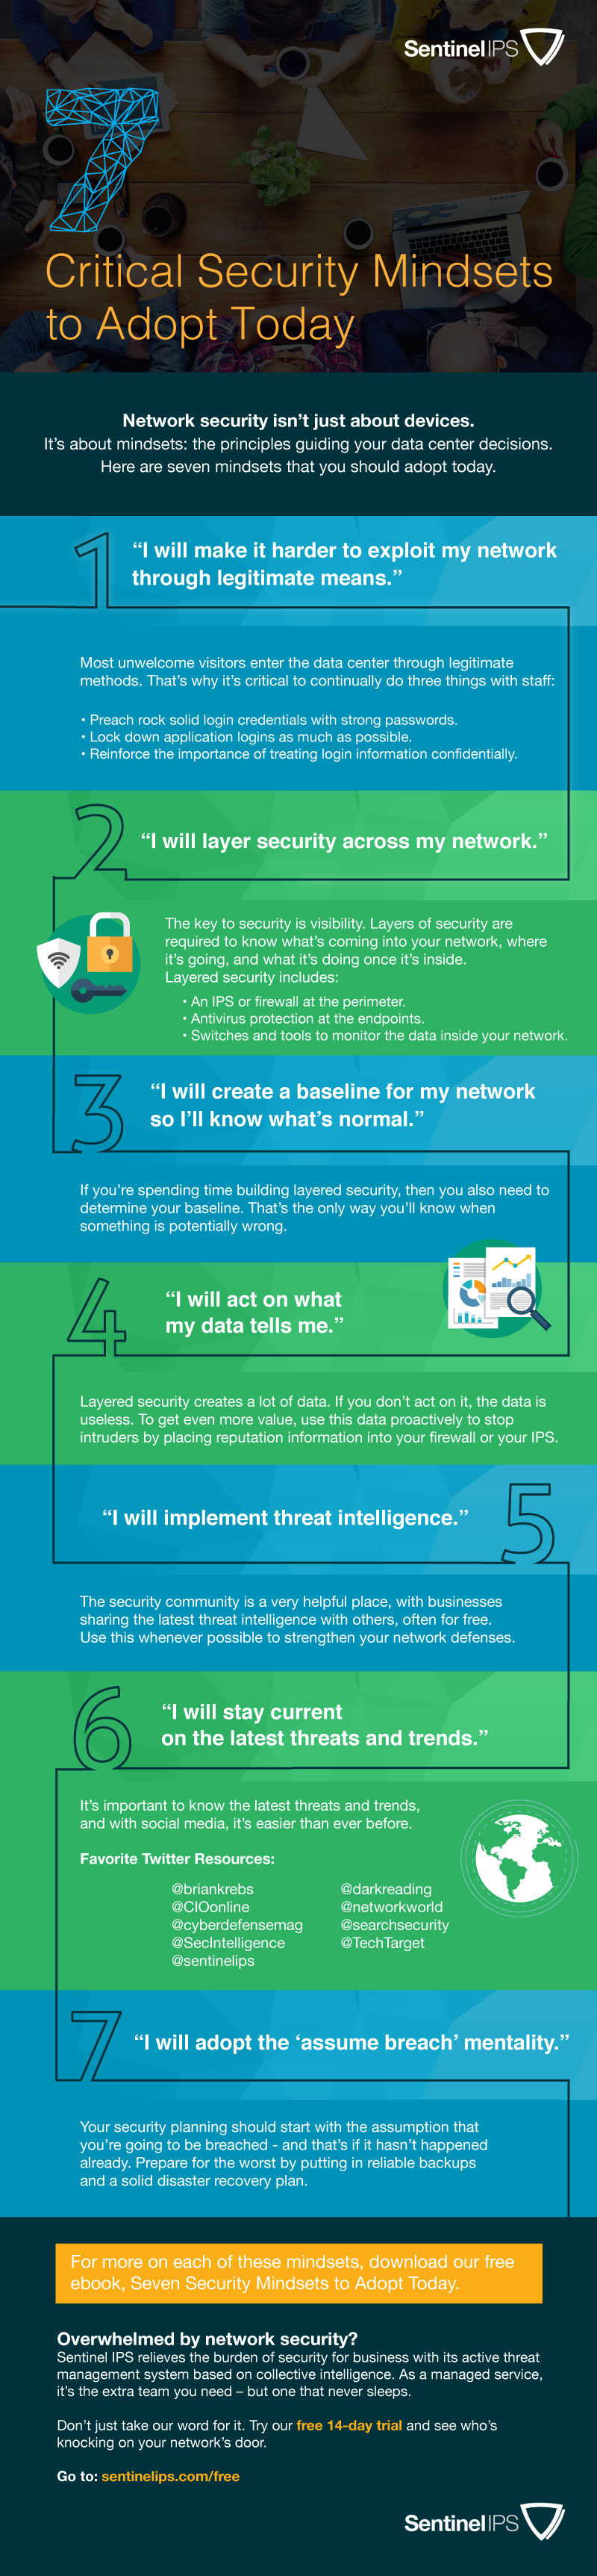 7 Security Mindsets to Adopt Today